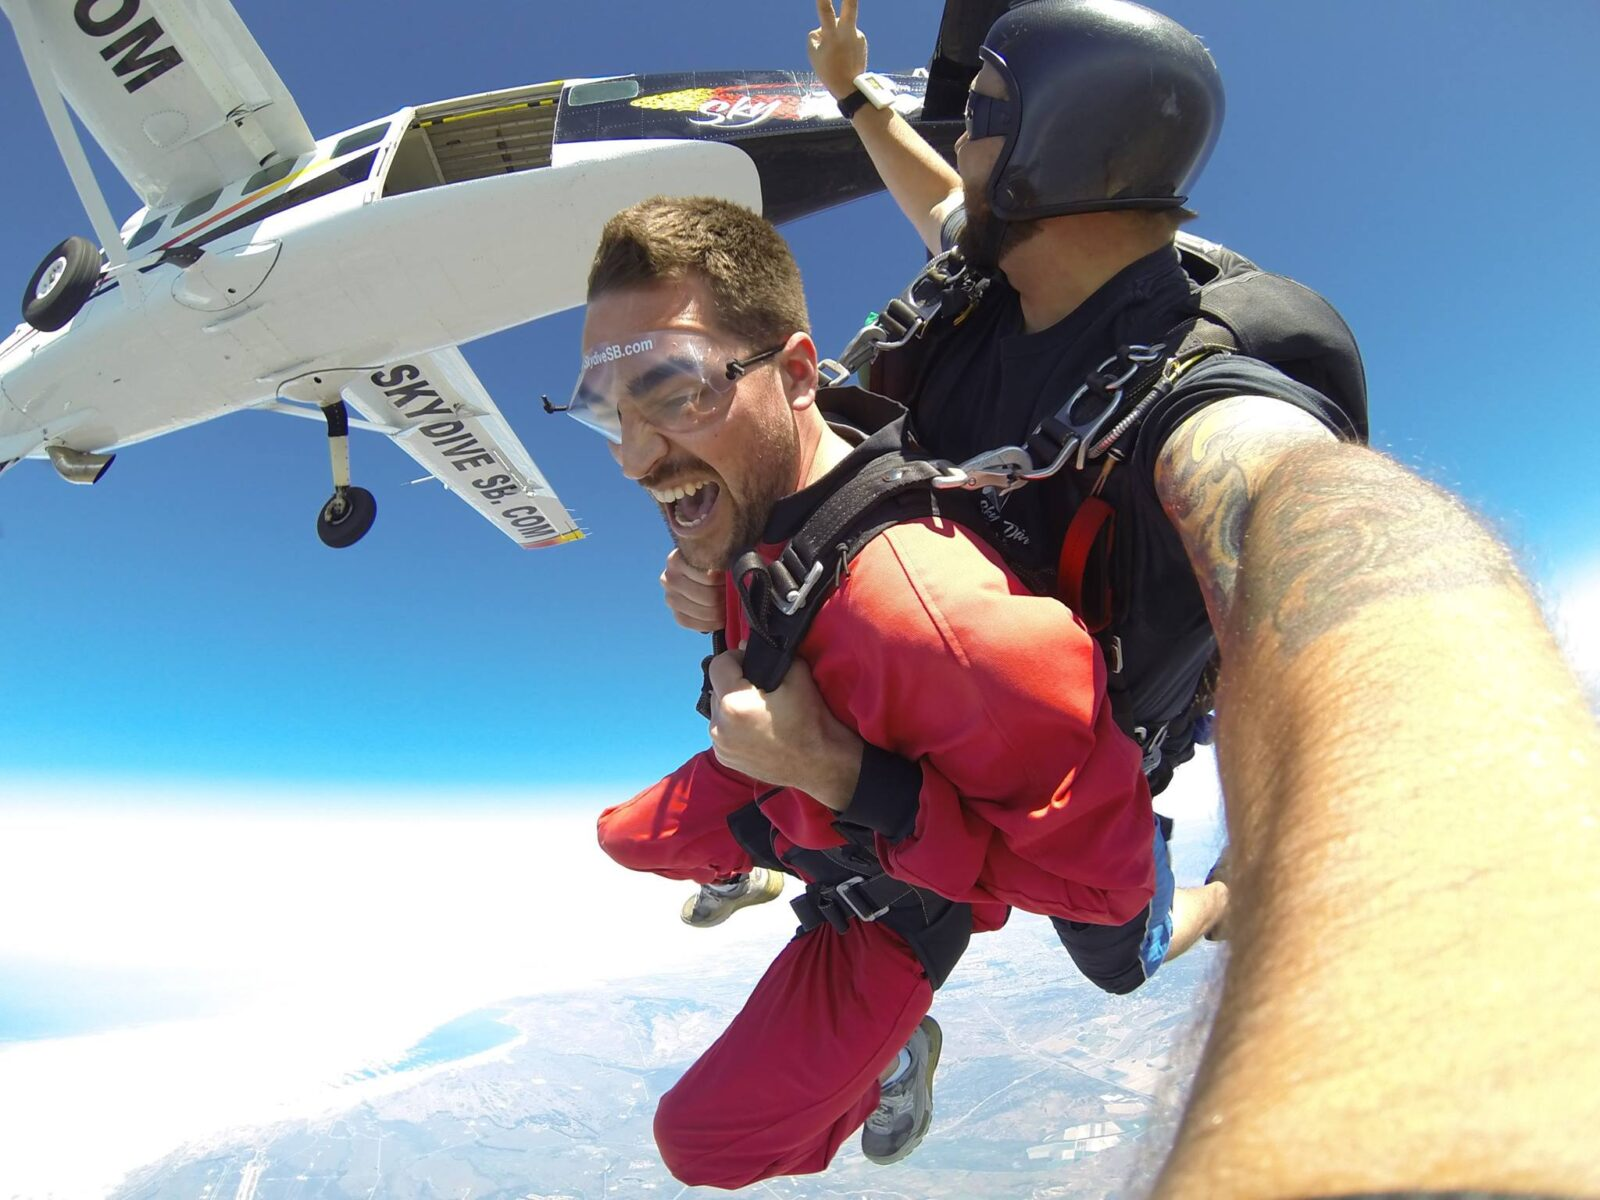 5 Reasons To Tandem Skydive This Holiday Season